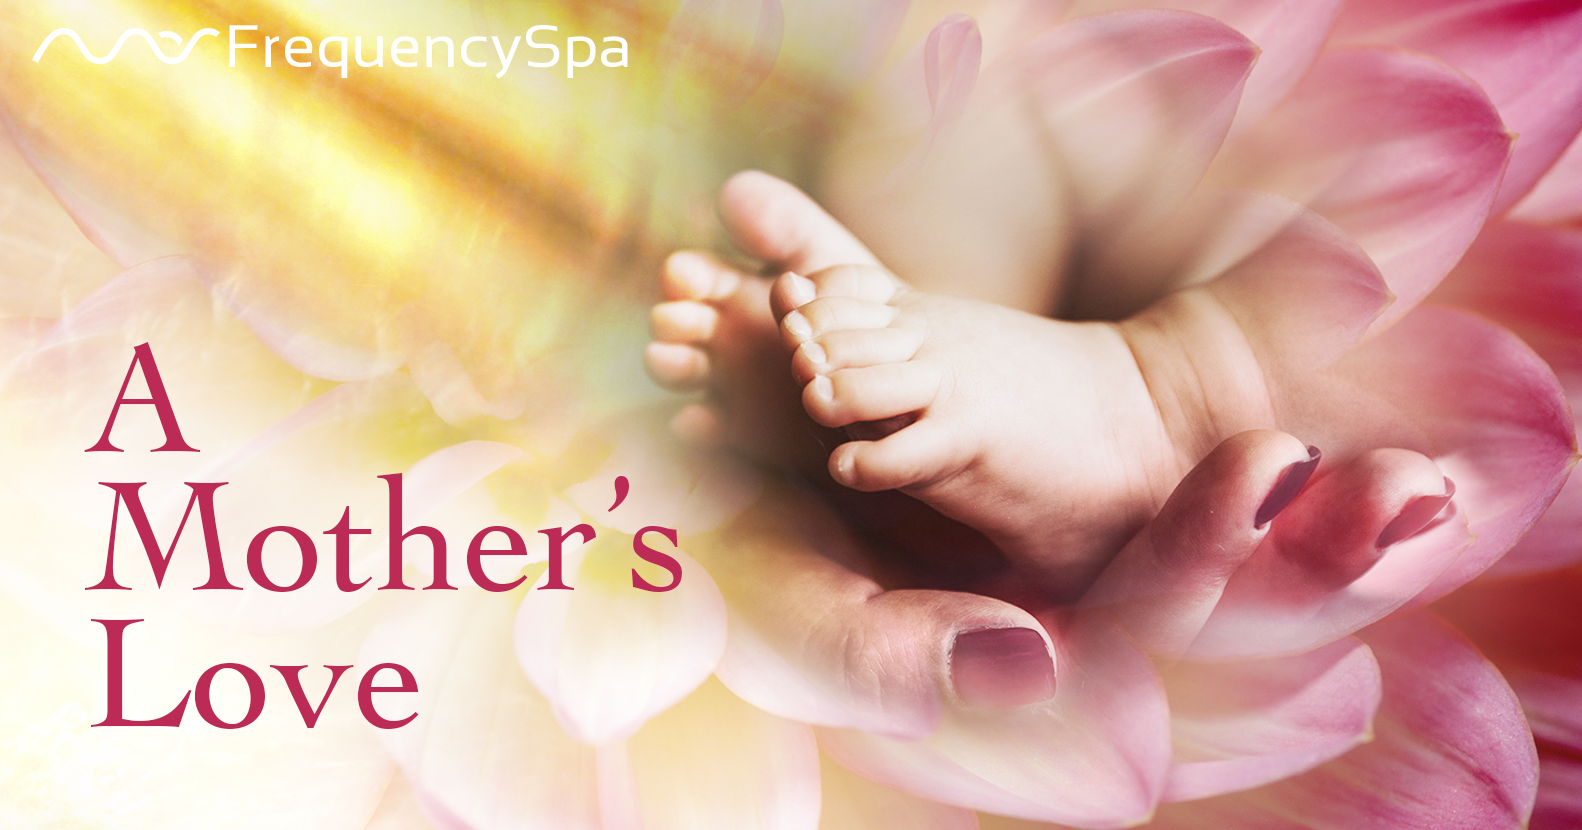 mothers-love-mas-sajady-live-frequency-spa.png